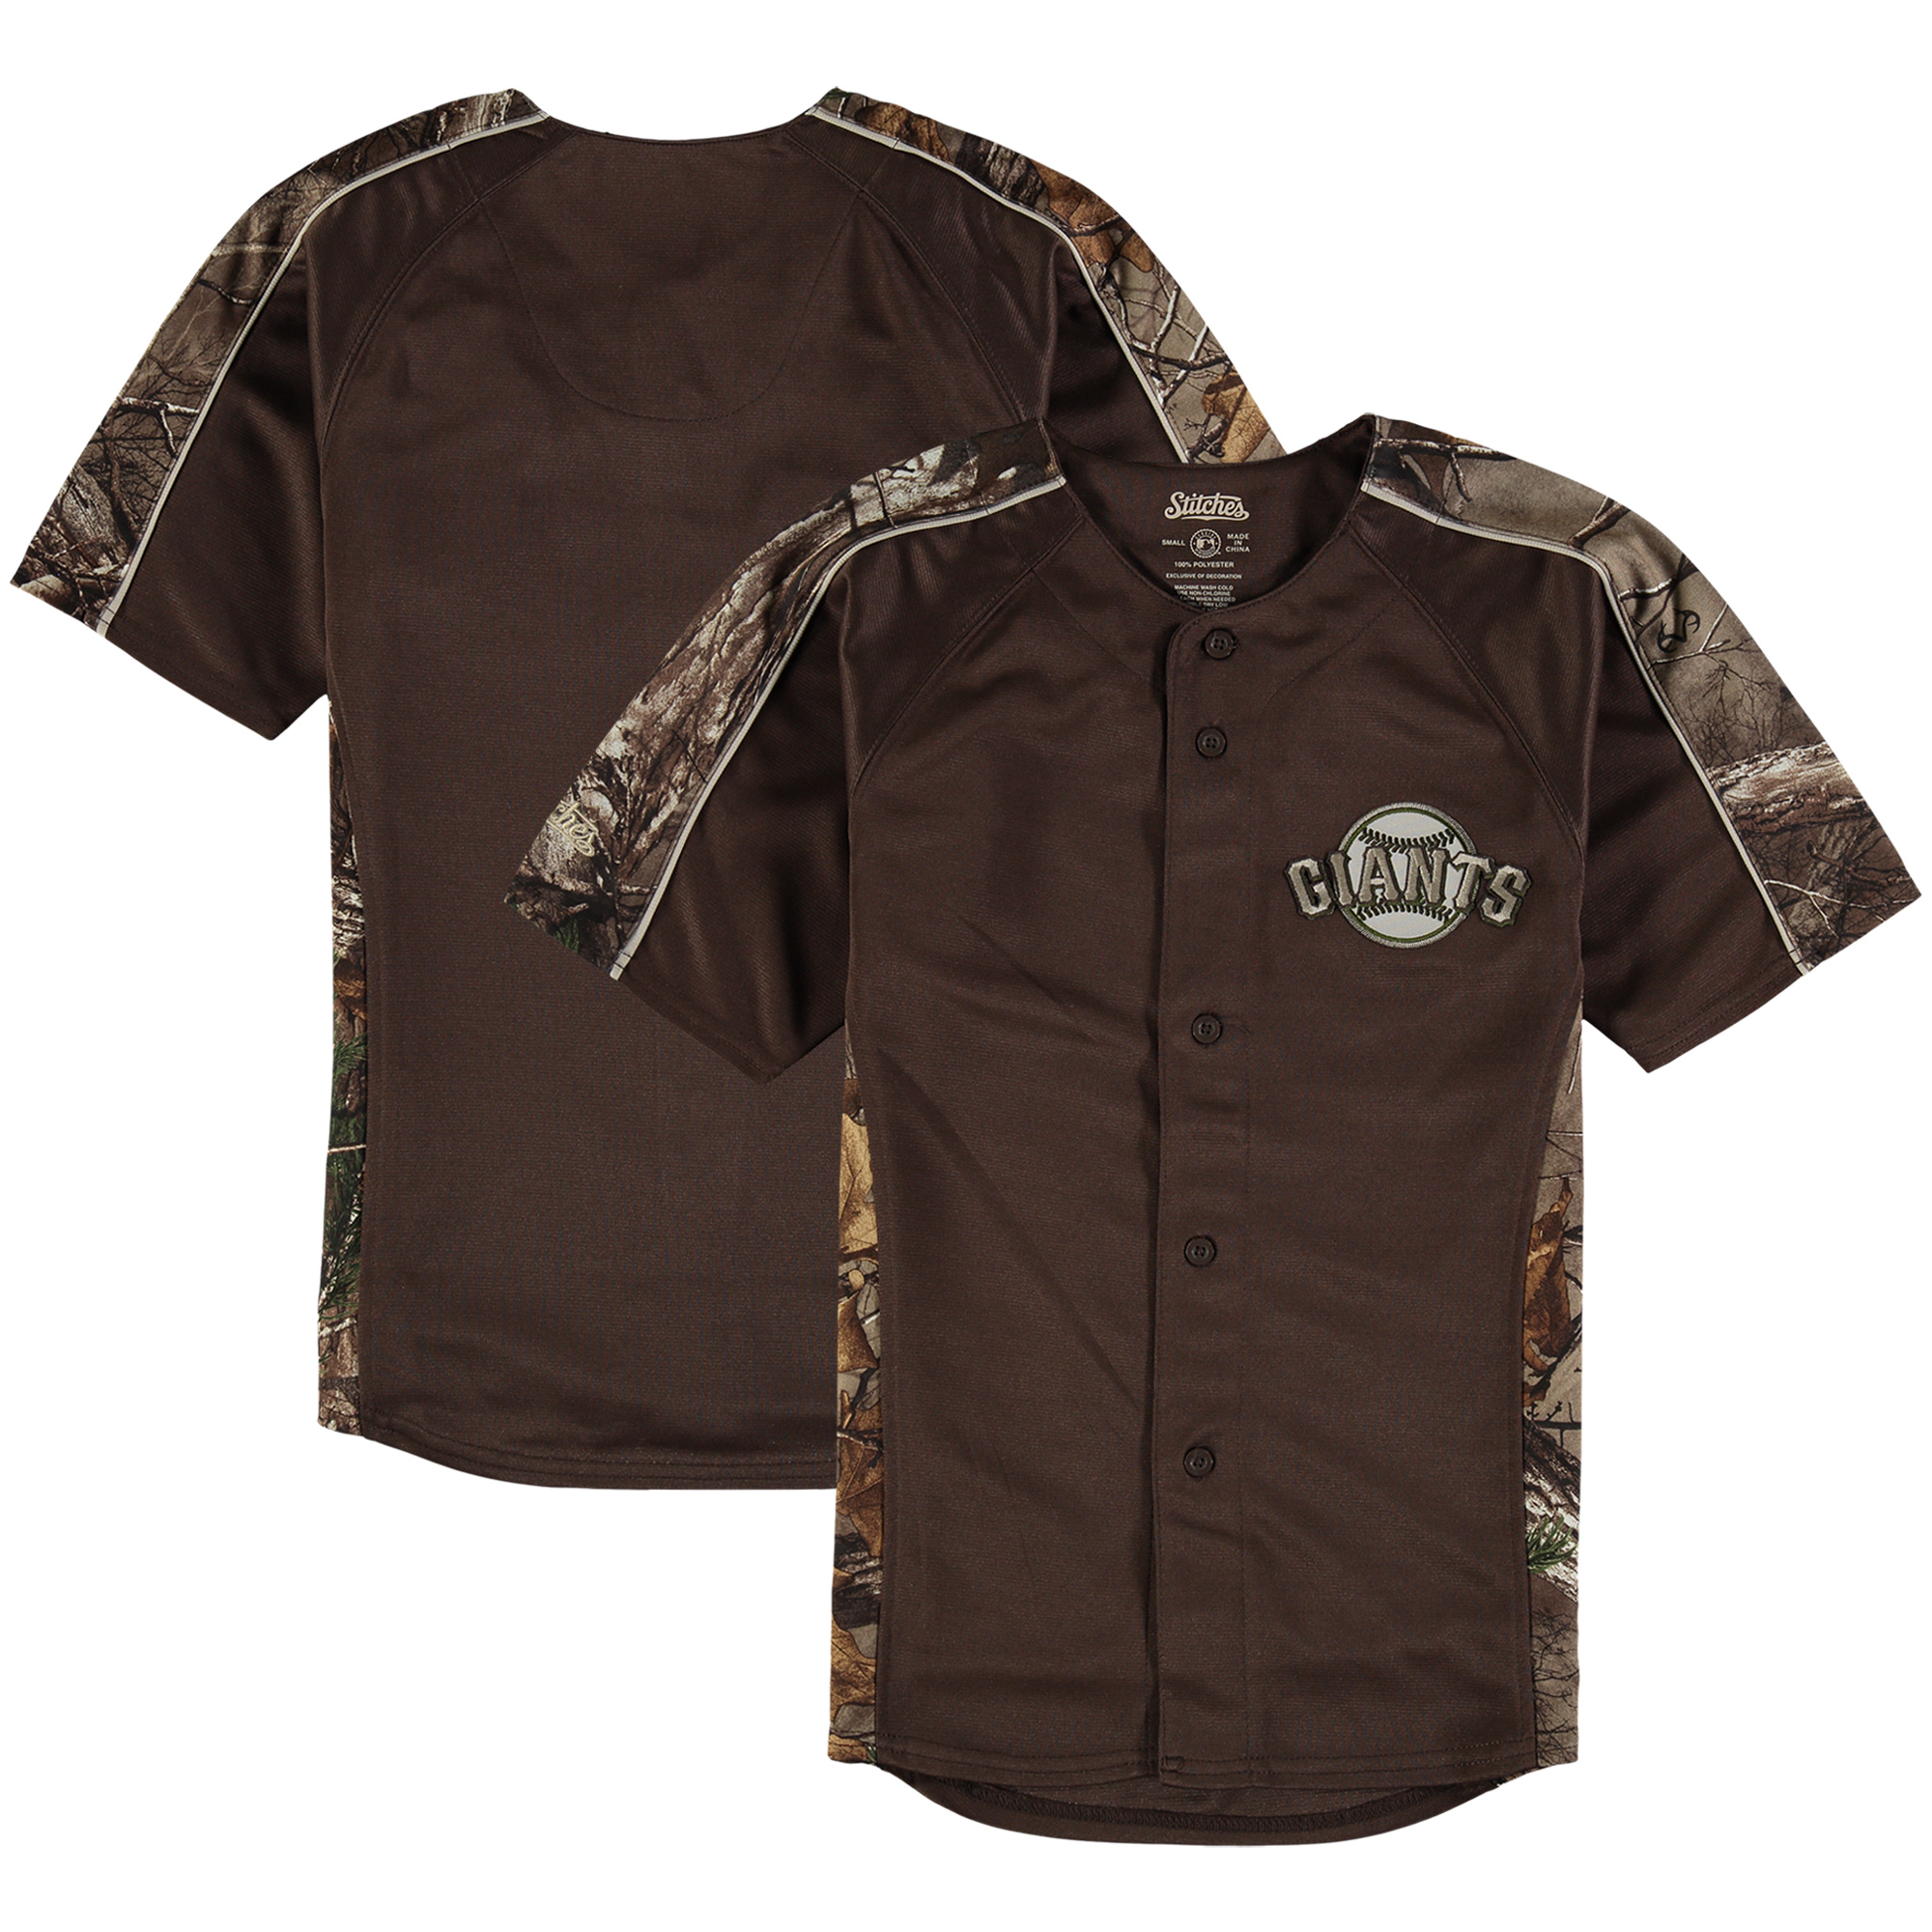 San Francisco Giants Stitches Youth Replica Jersey - Realtree Camo